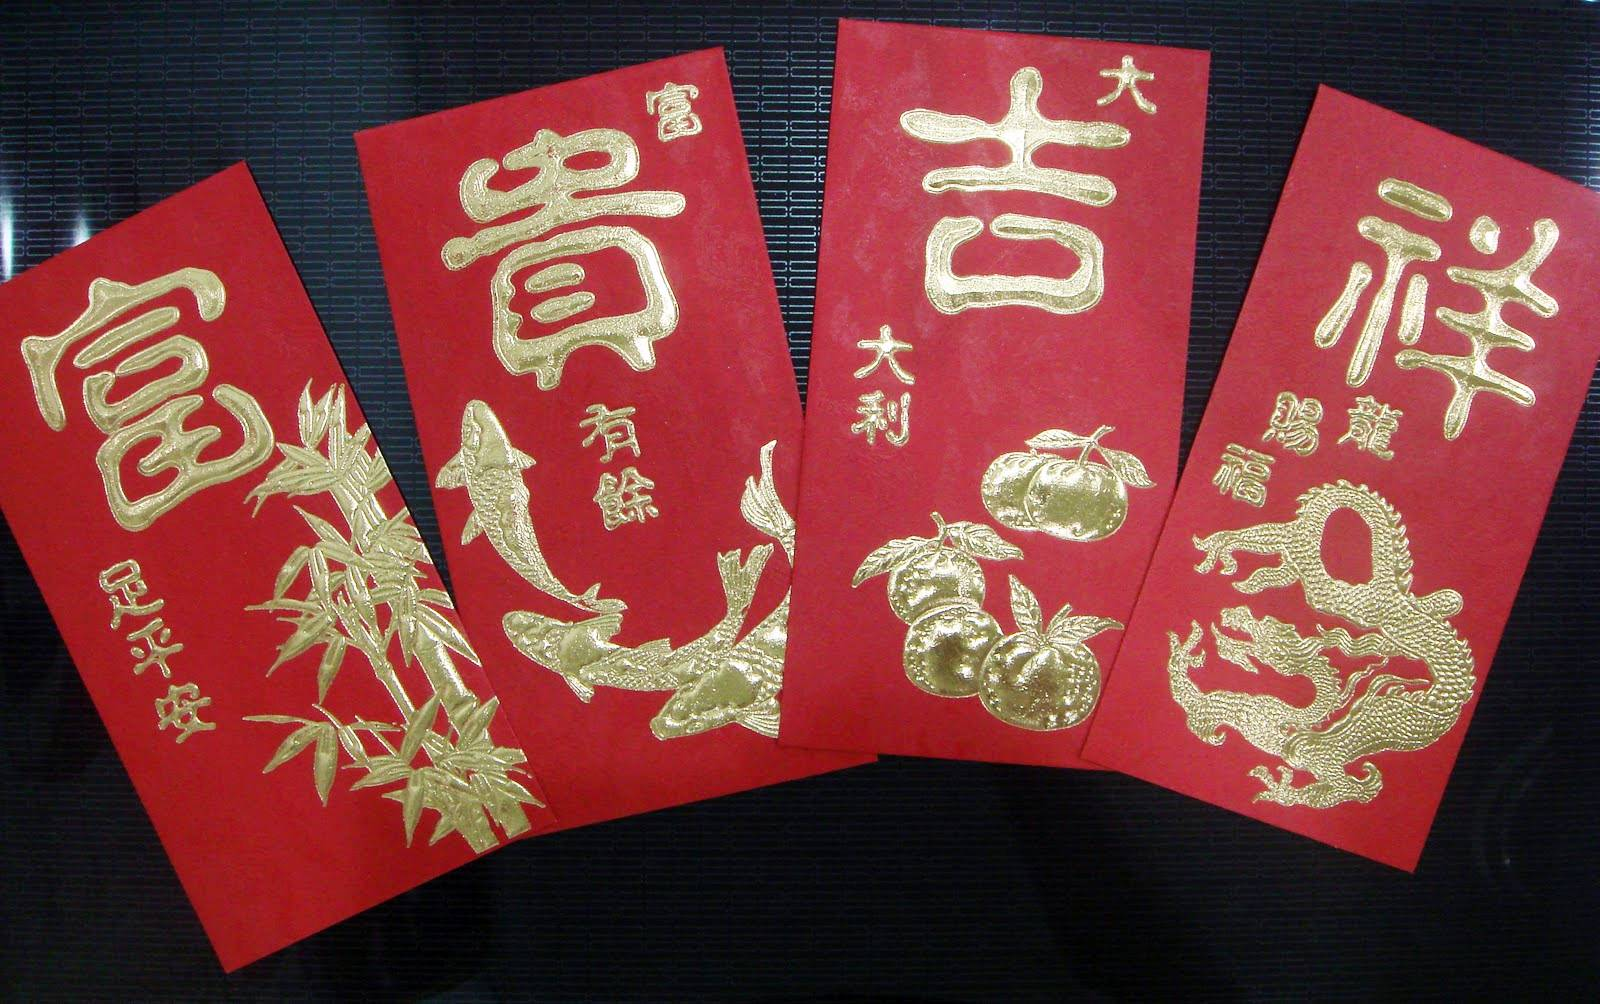 red envelopes, money, feng shui philippines, wealth